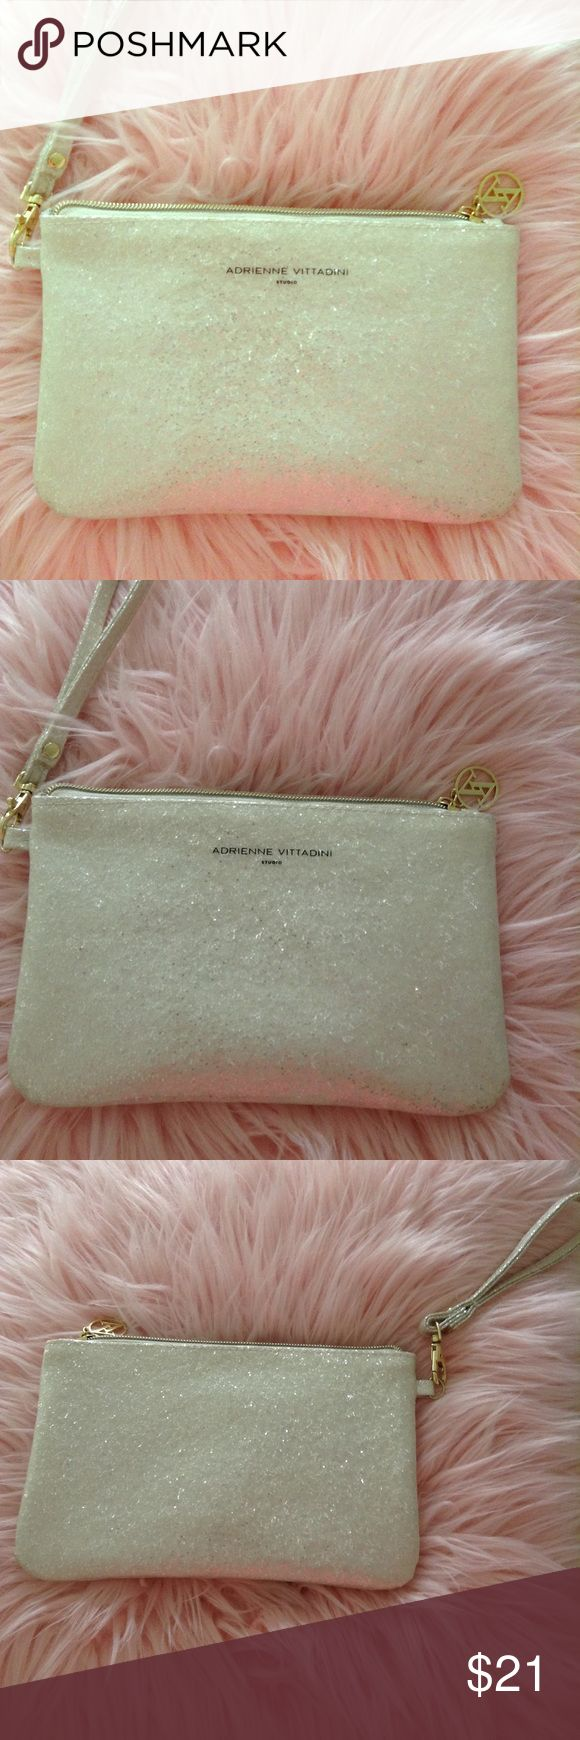 White Sequin Clutch White Sequin clutch with built in phone charger. Like-new, used once for a special event. Adrienne Vittadini Bags Clutches & Wristlets